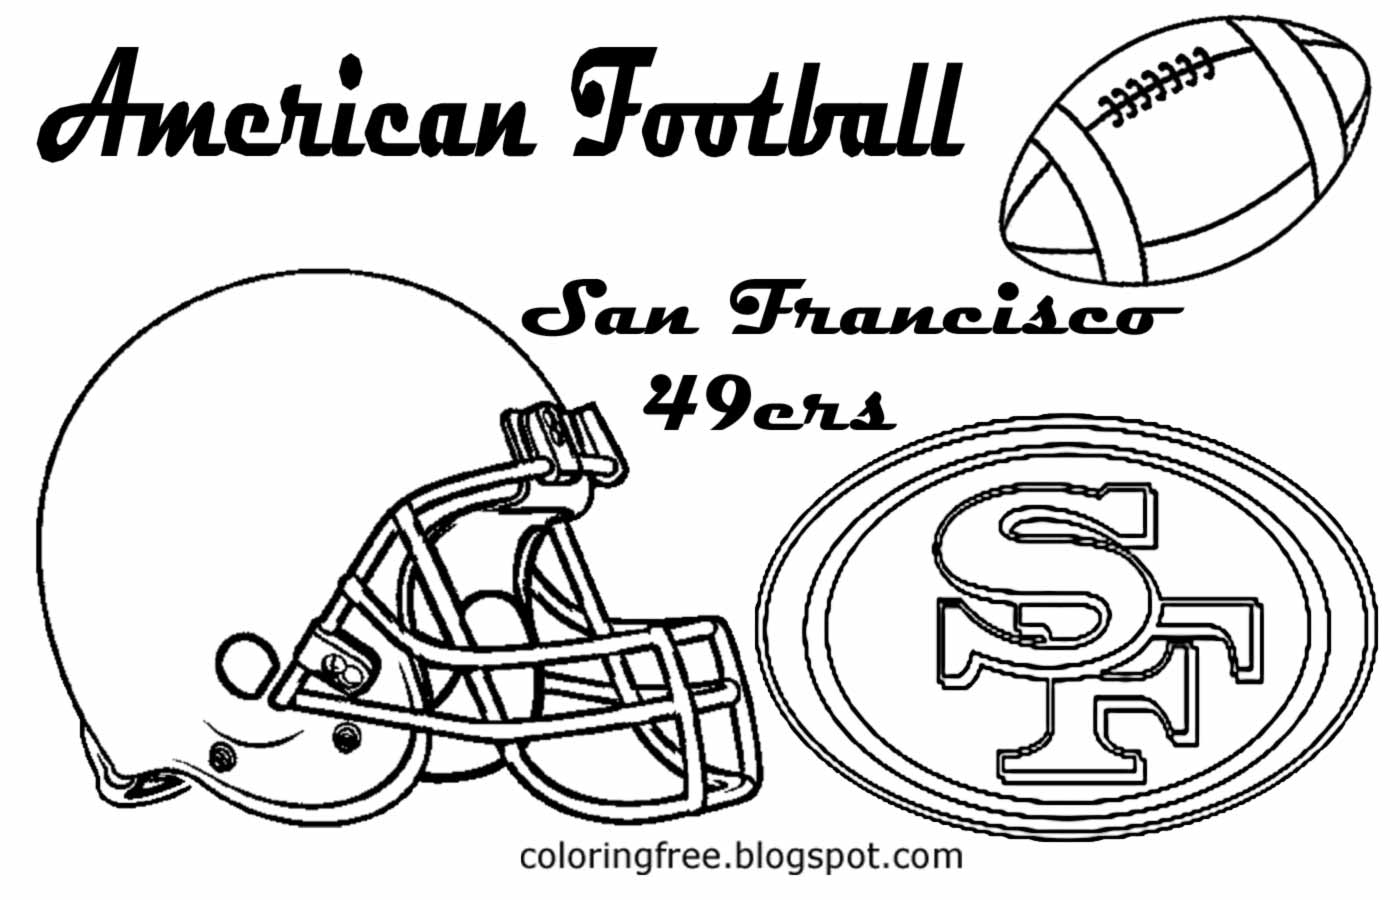 San francisco 49ers coloring pictures coloring pages for Sf 49ers coloring pages